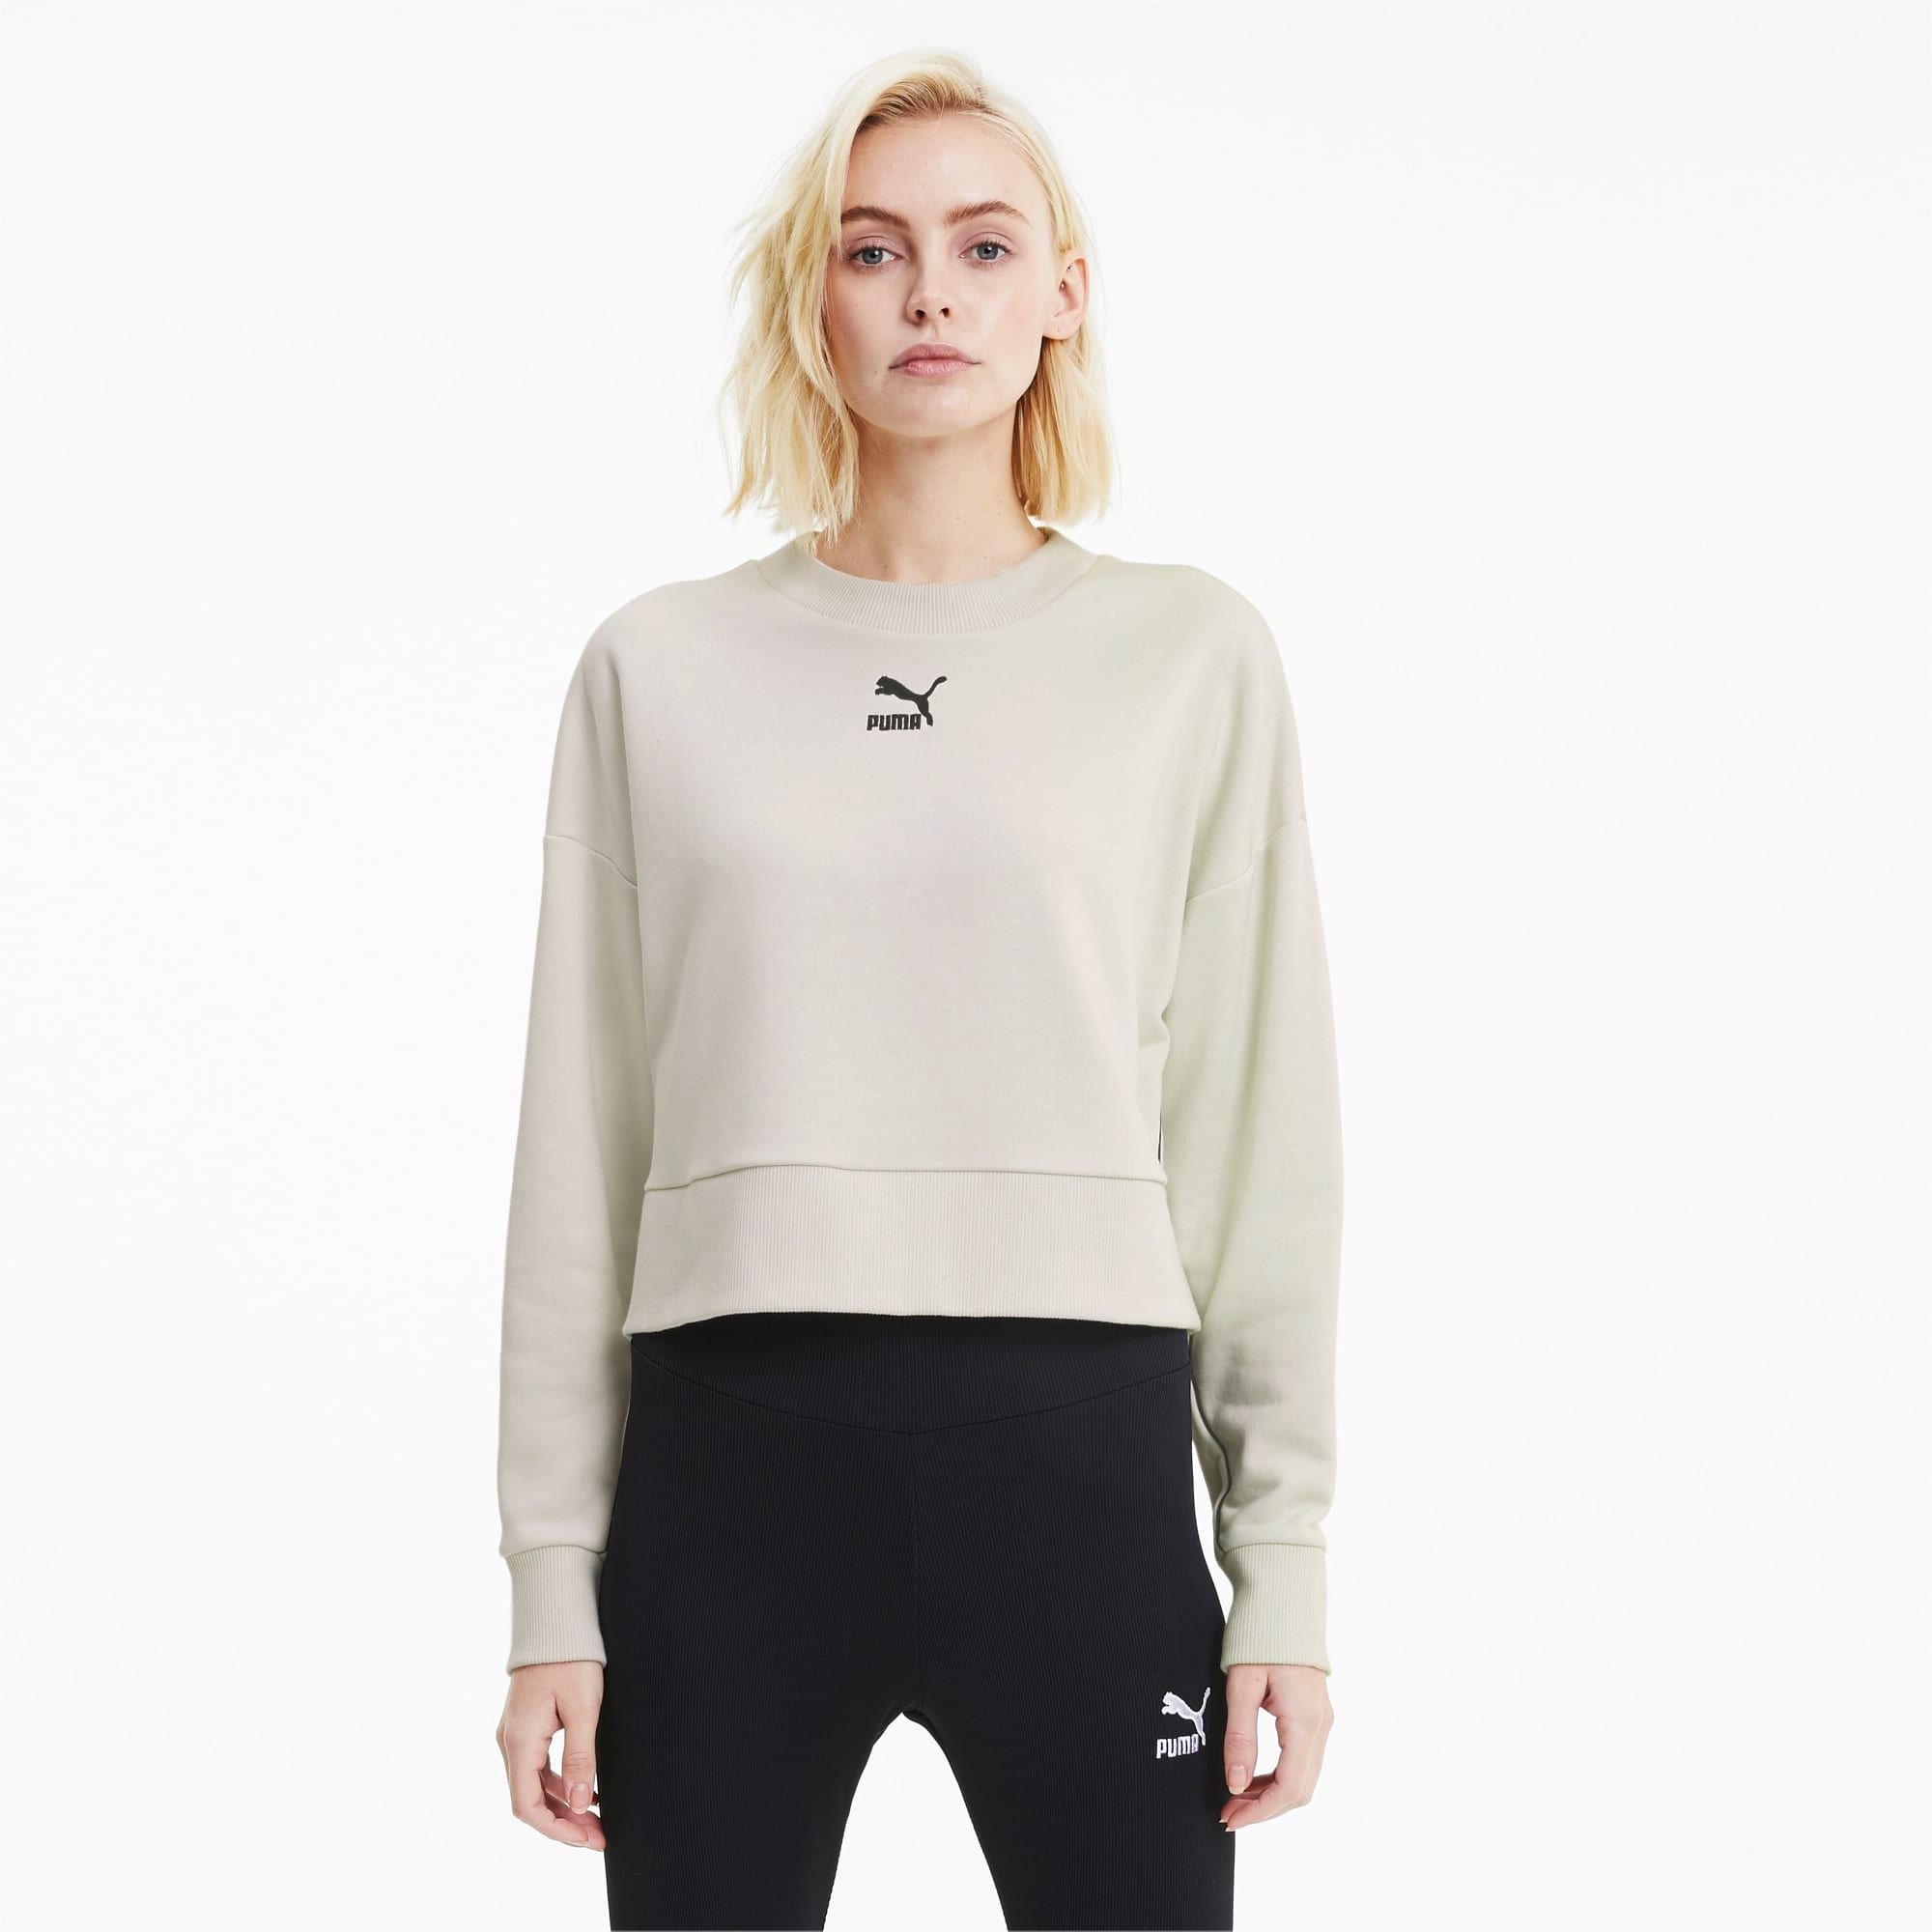 Puma: Up to 50% off sale styles + extra 30% off!